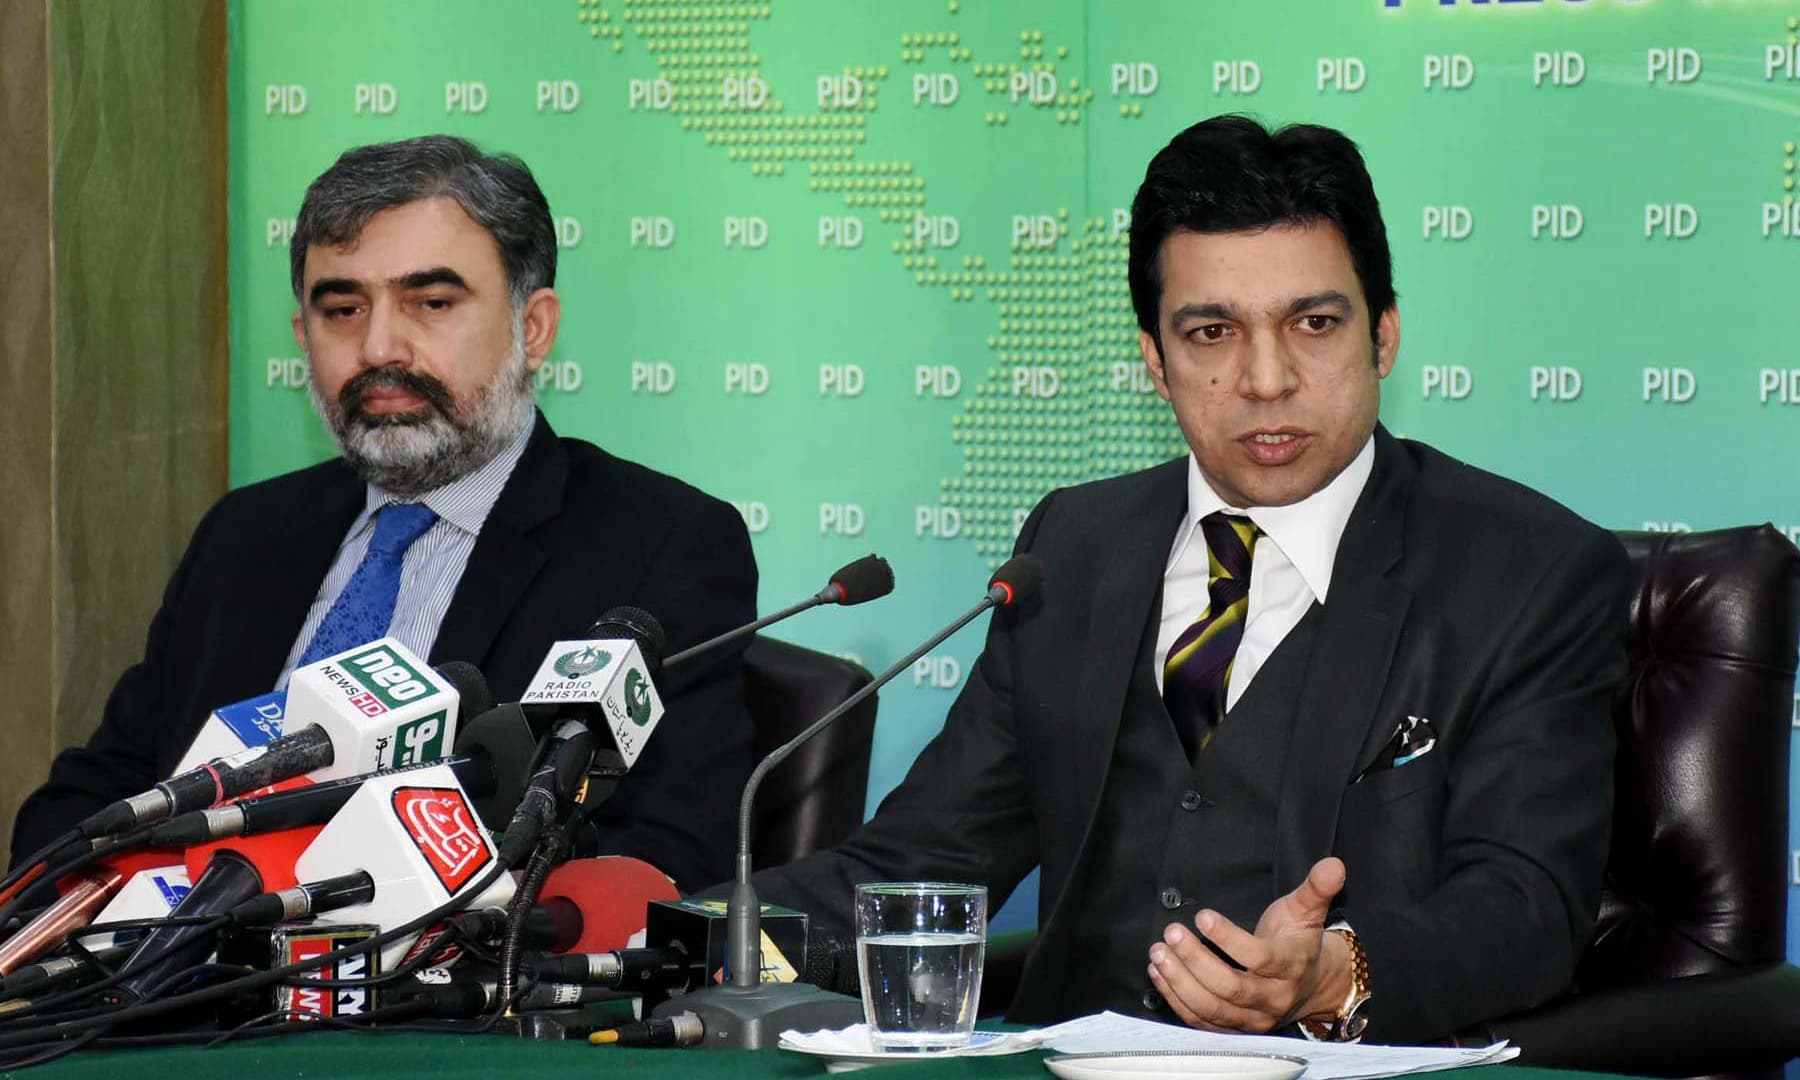 PTI govt to complete construction of Dasu dam by 2022, says Faisal Vawda